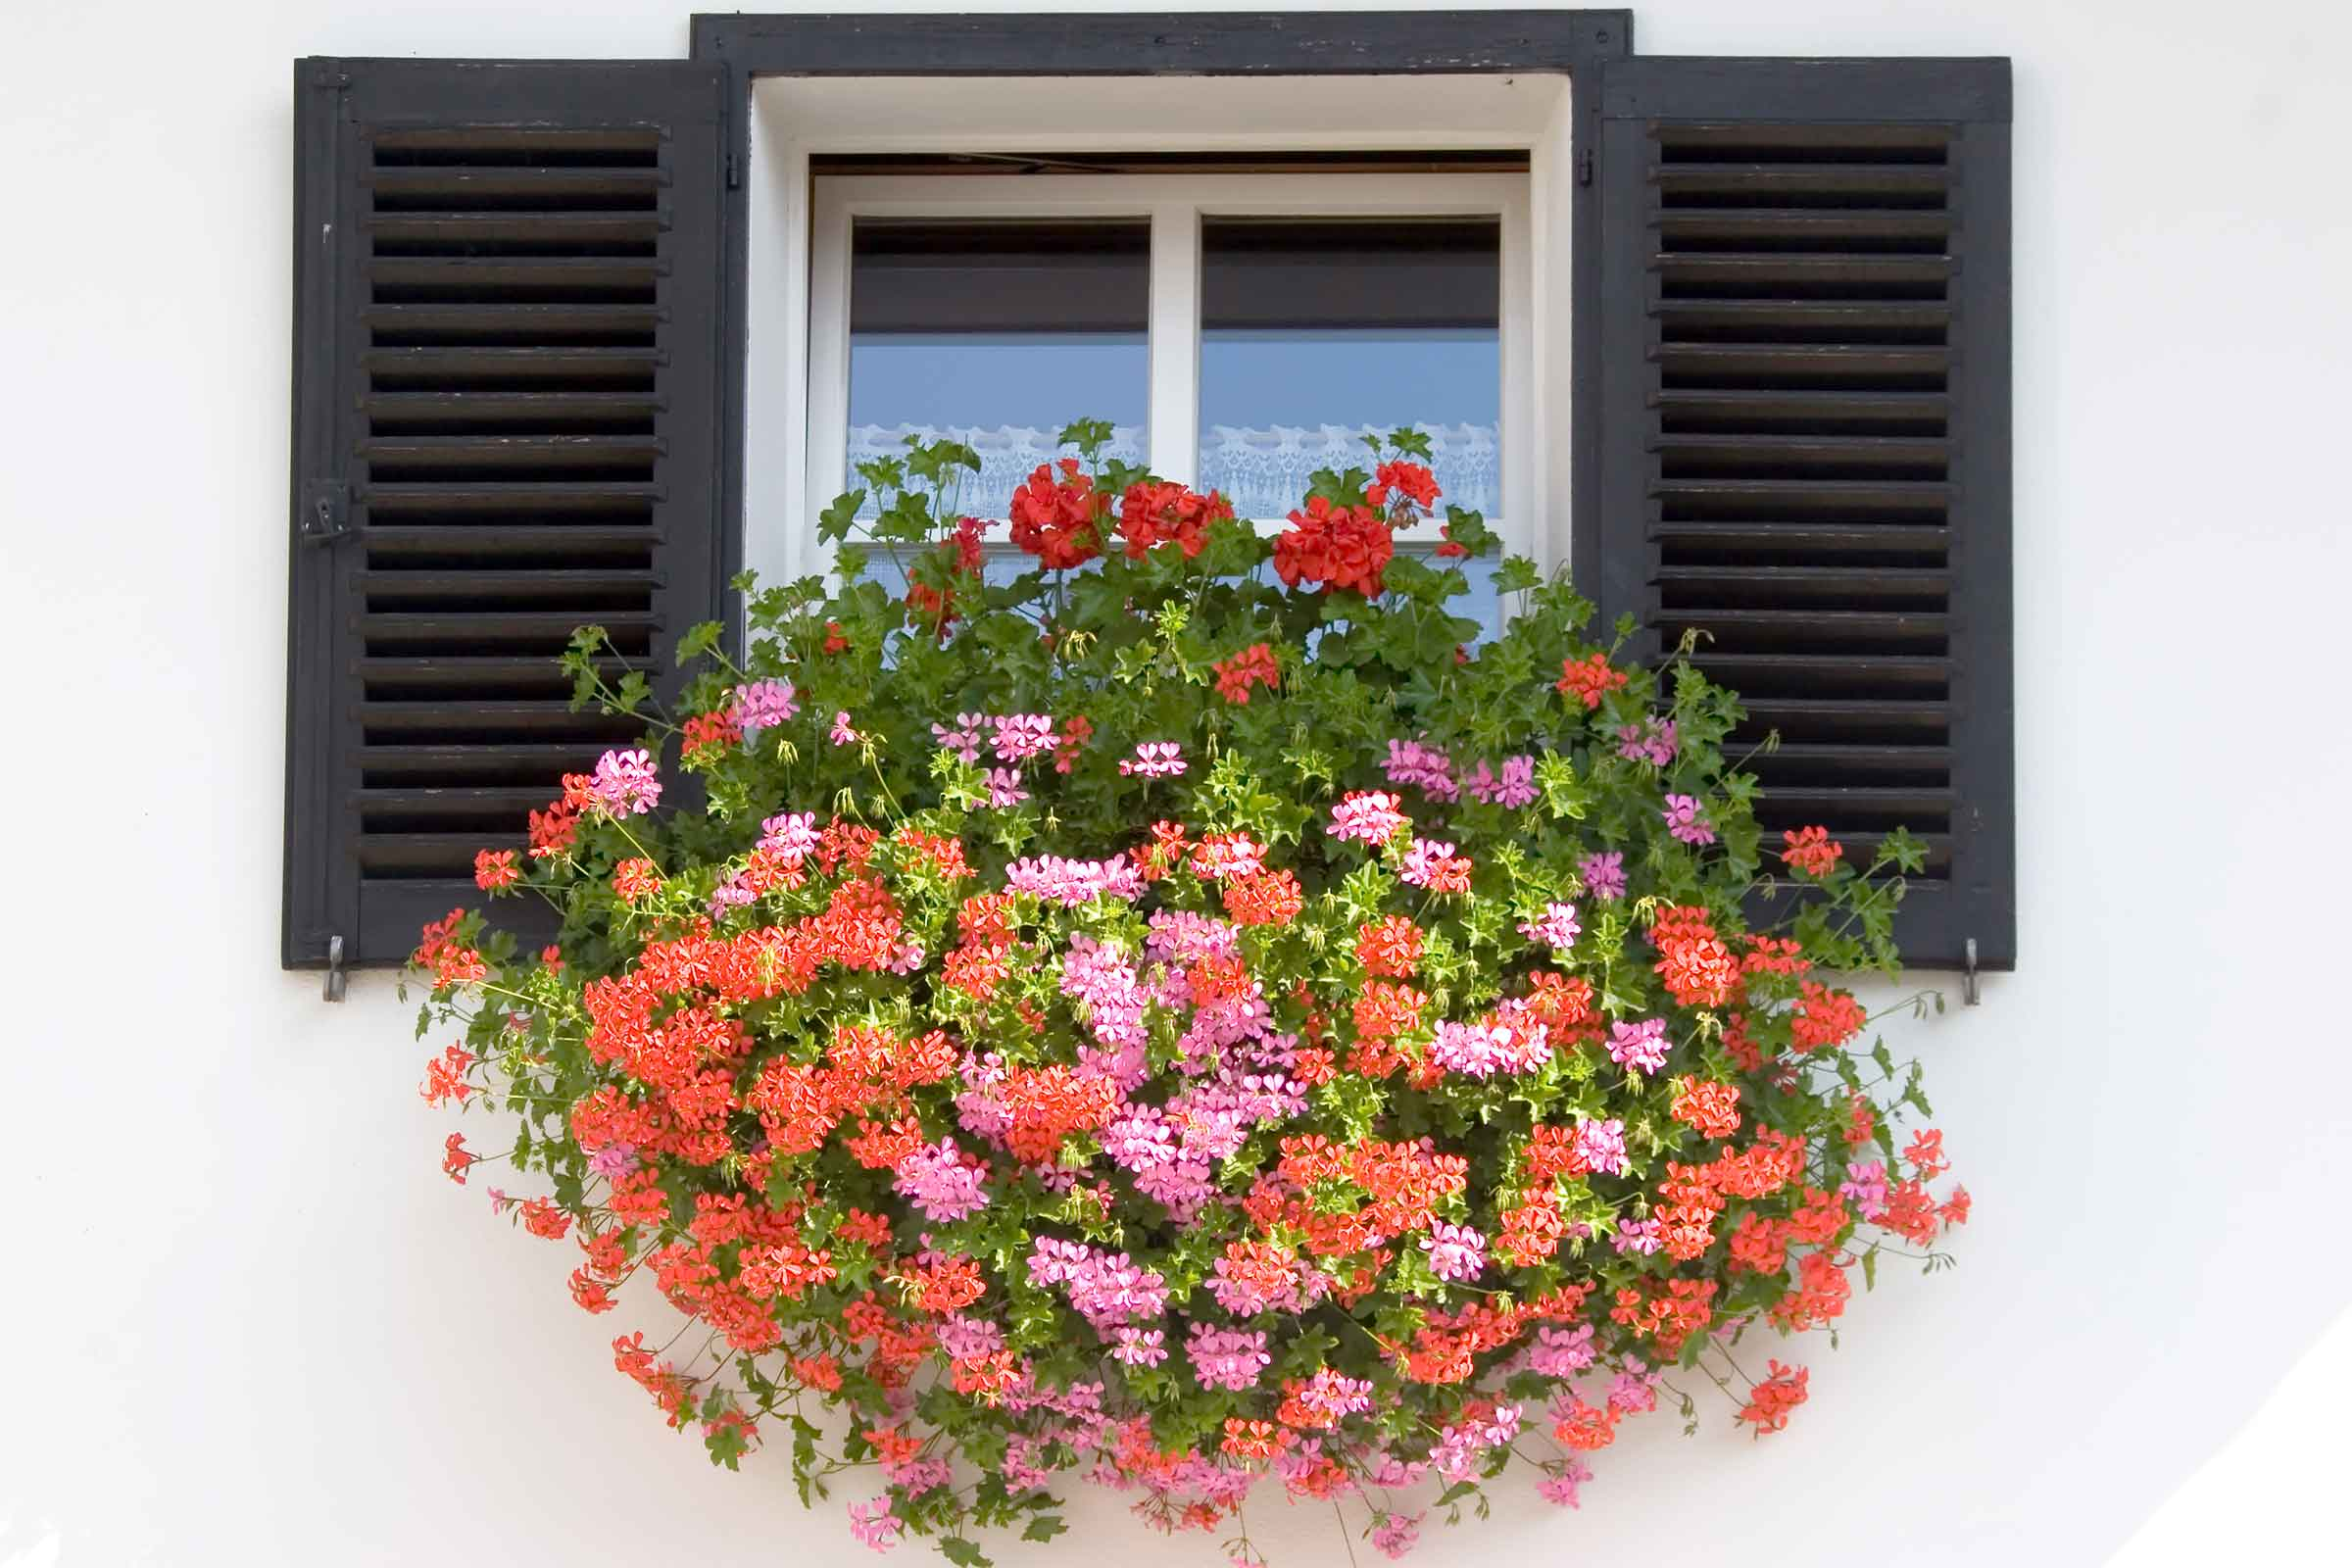 Window Box Installation Guide by FlowerWindowBoxes.com